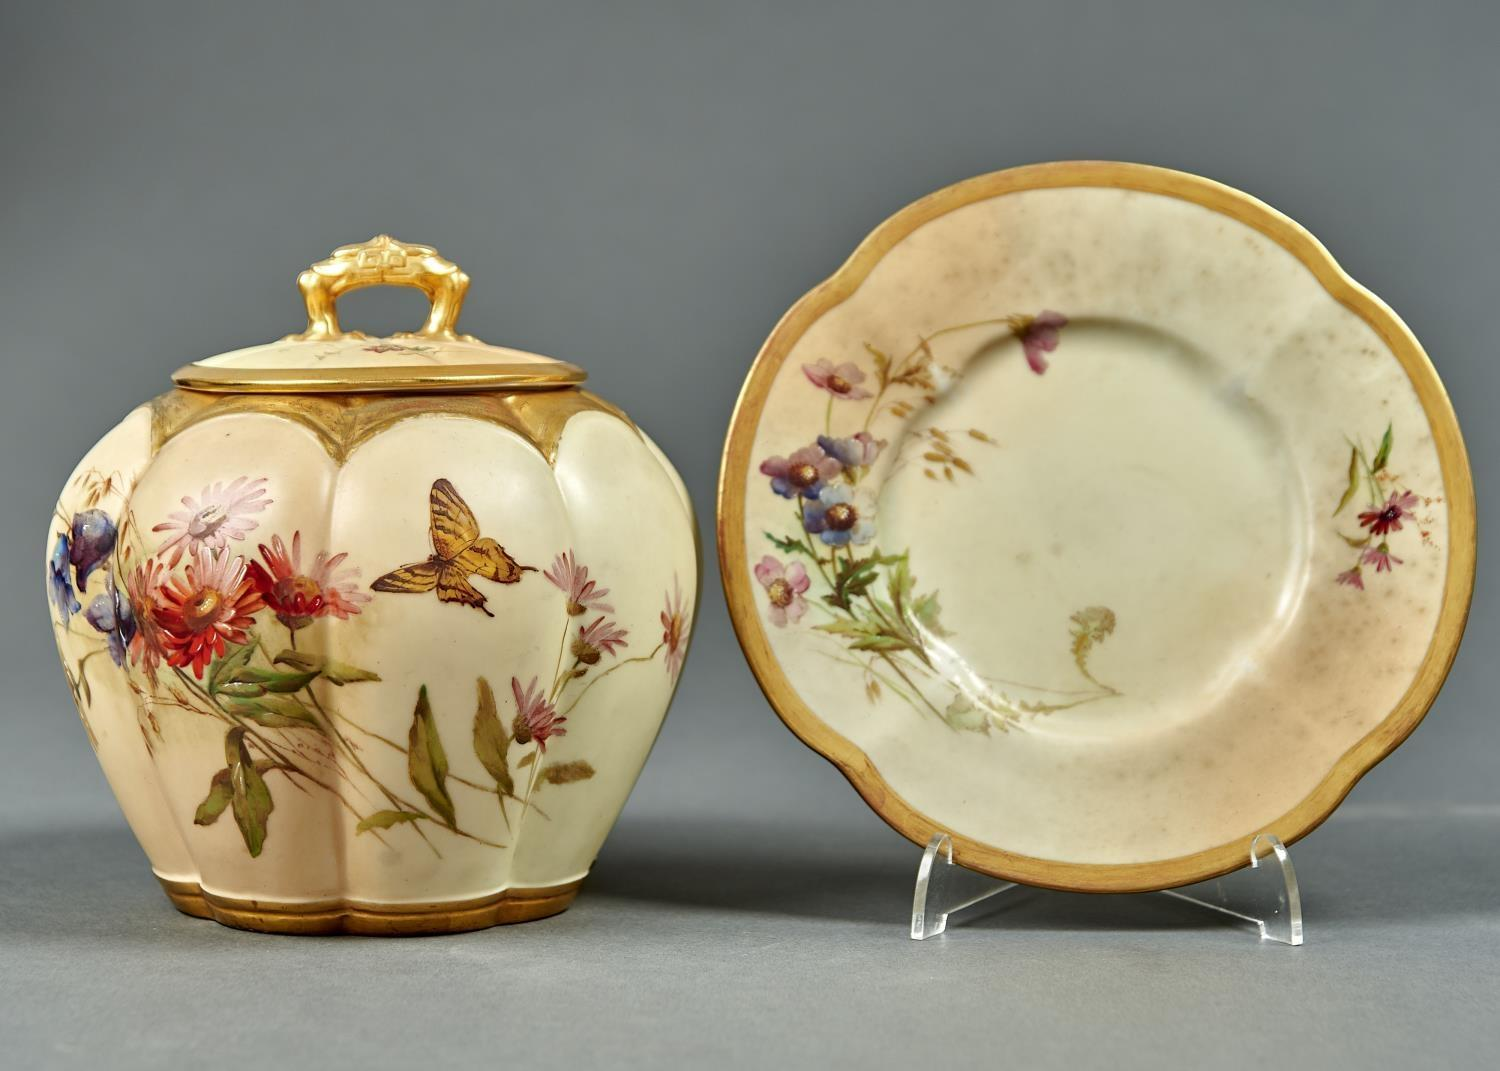 A ROYAL WORCESTER LOBED OVOID MELON JAR, COVER AND STAND, 1900, PRINTED AND PAINTED WITH A - Image 2 of 2